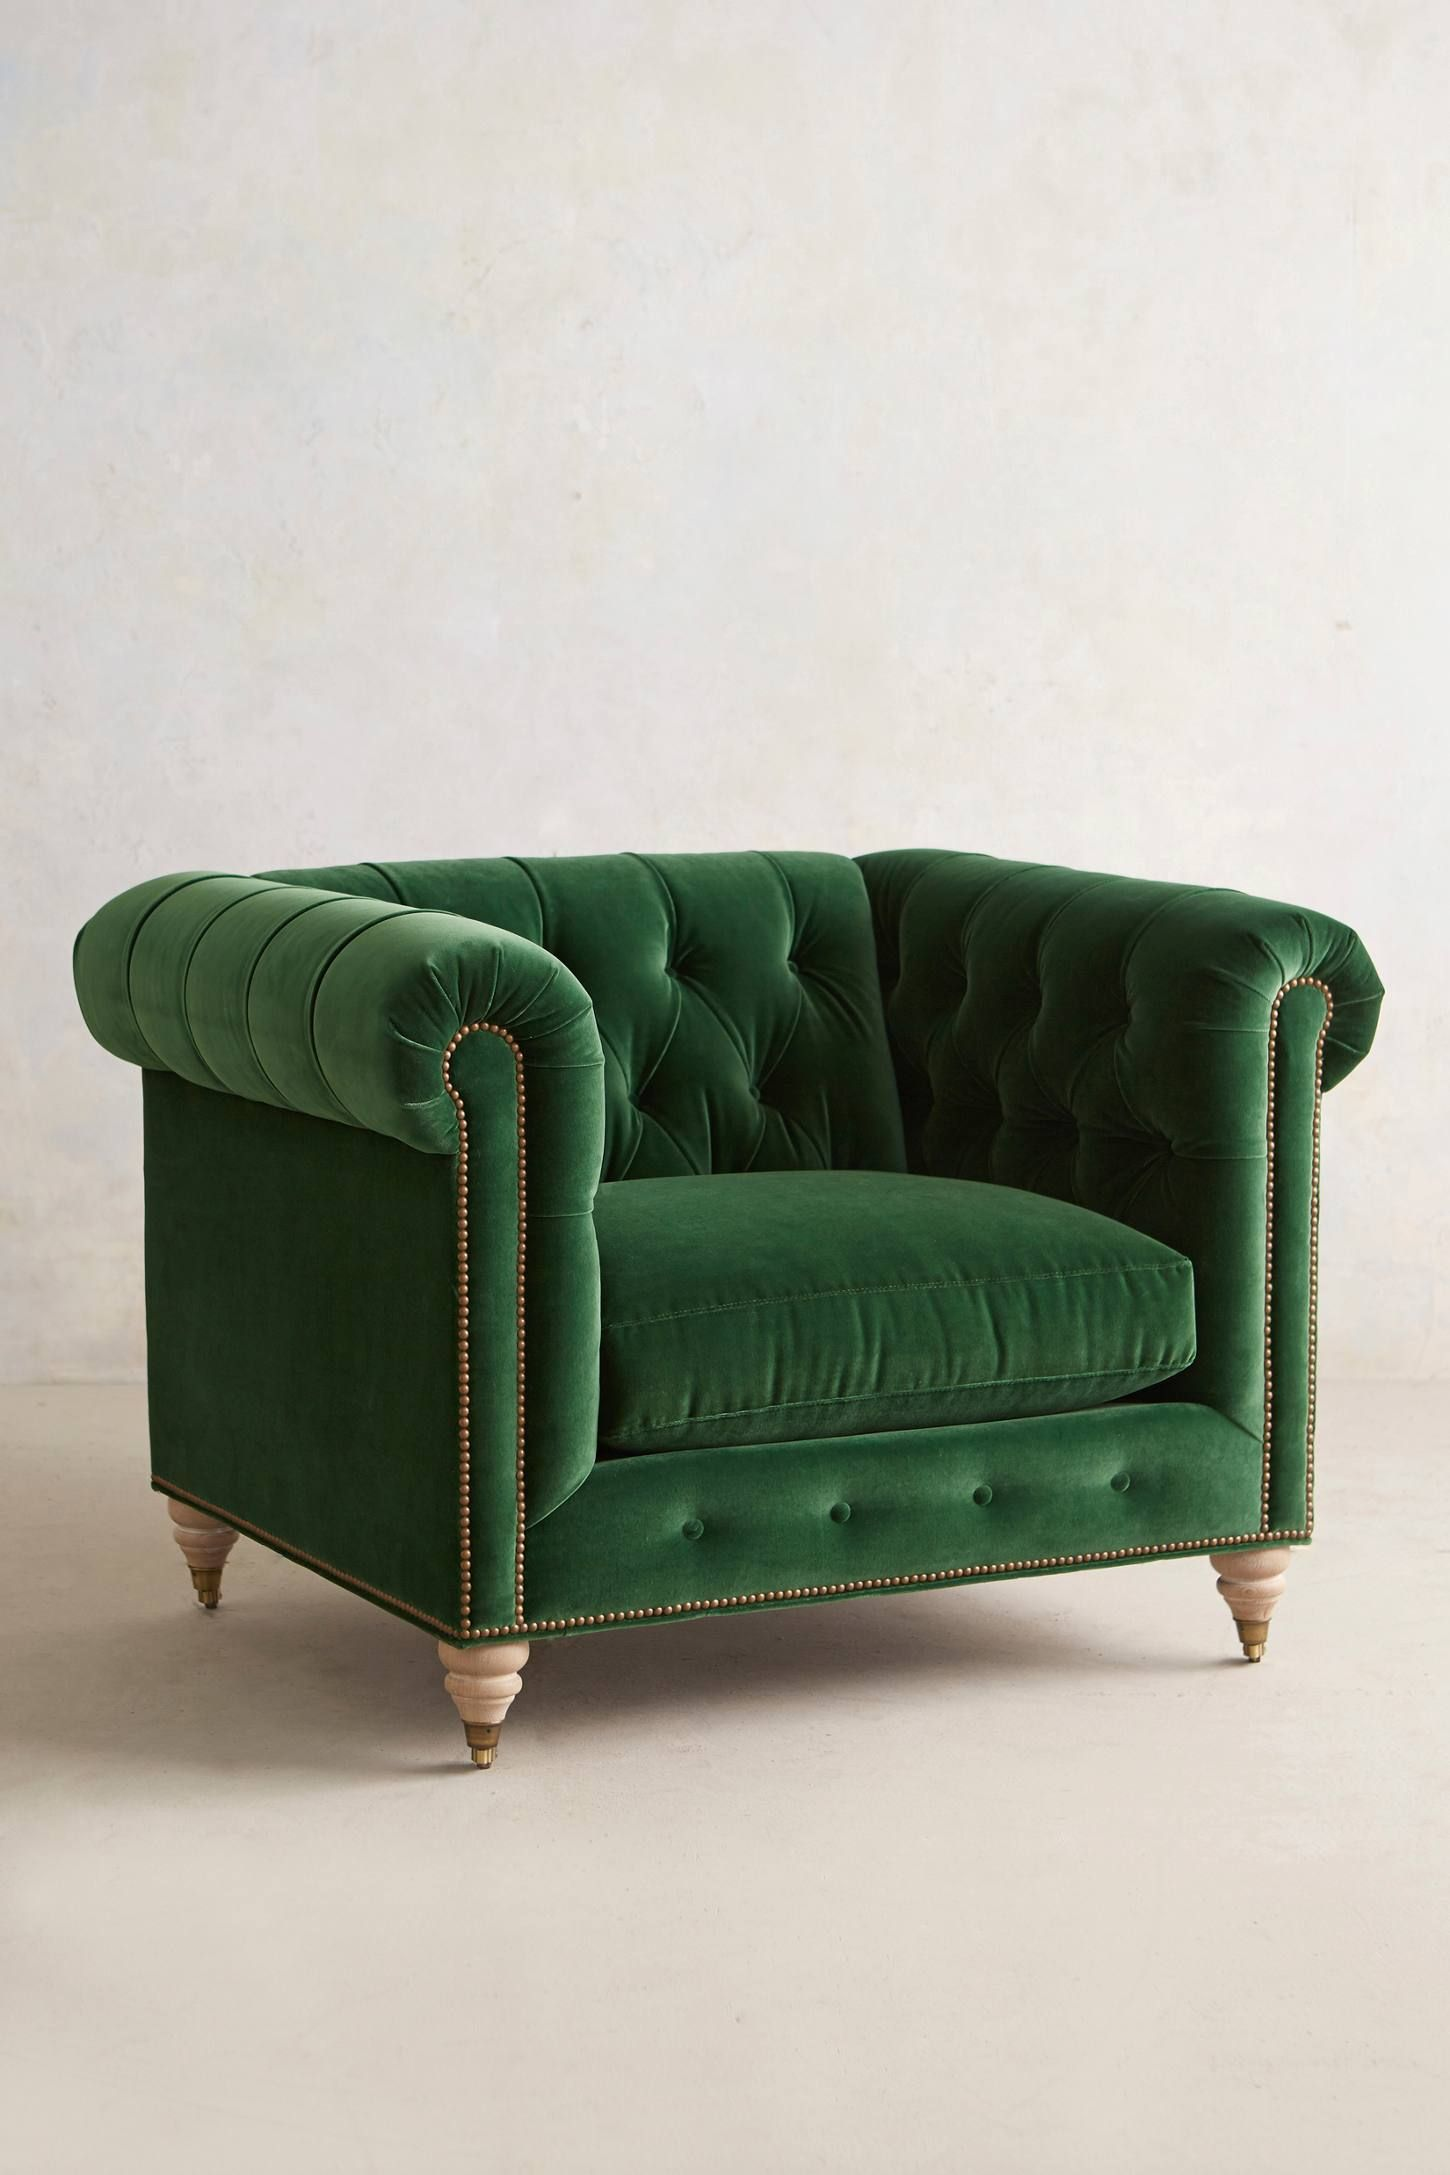 Lyre Chesterfield Armchair Chesterfield Armchair Furniture Home Furniture